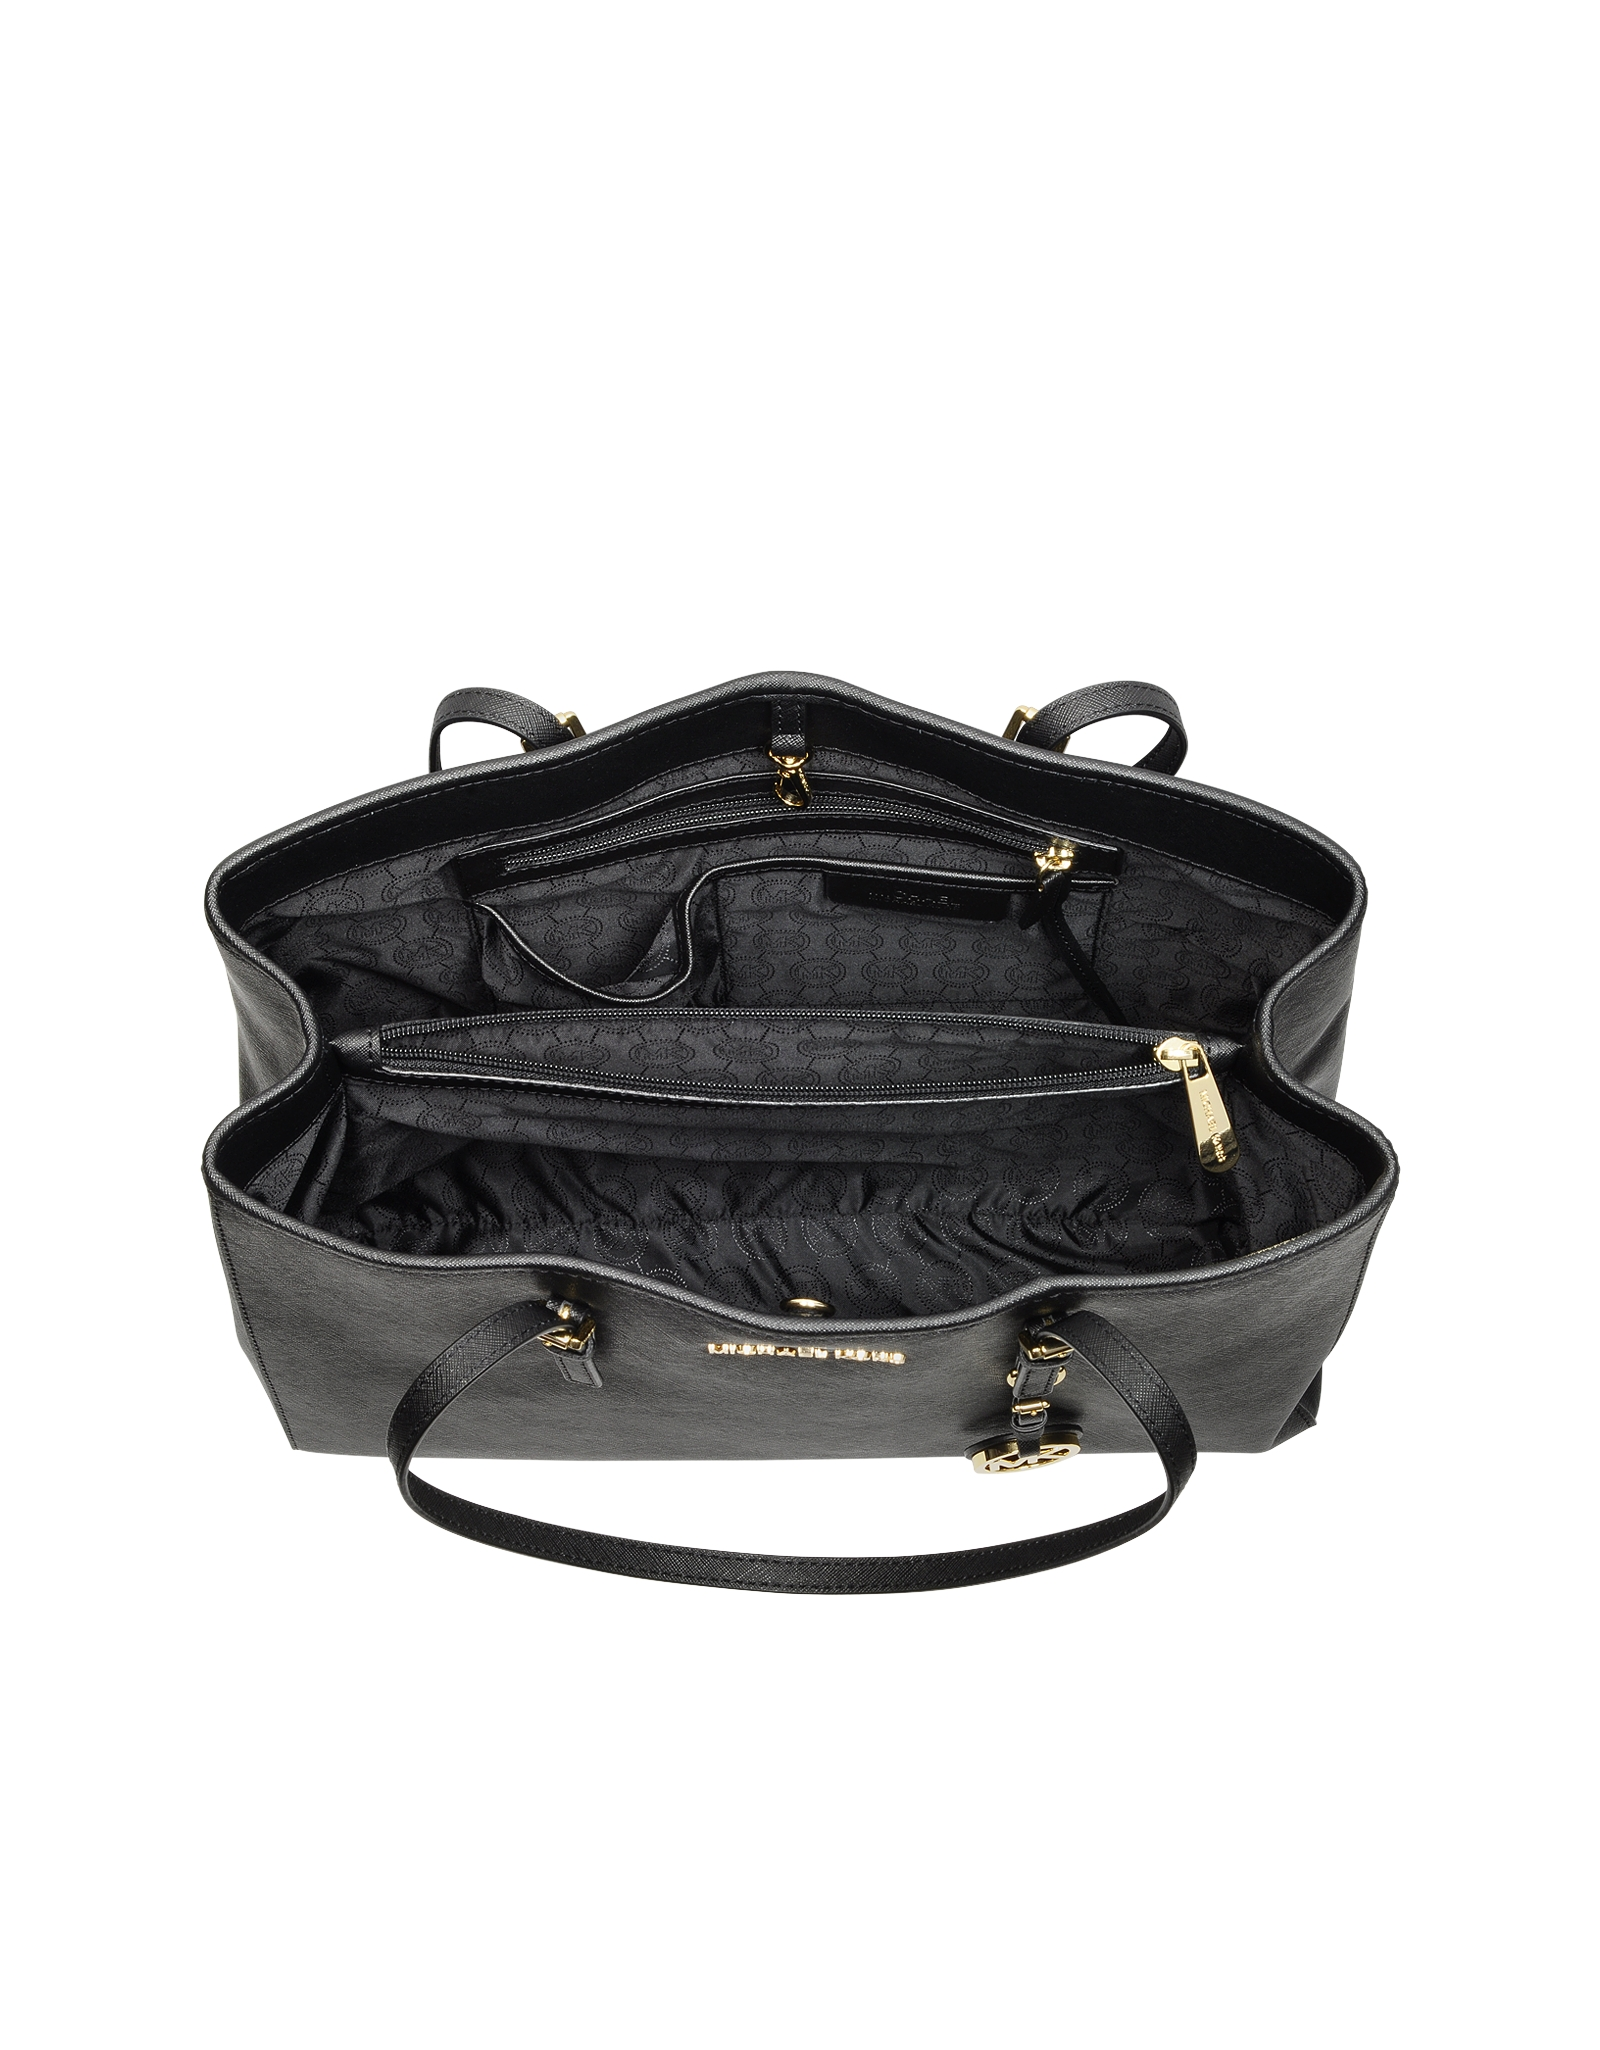 80f45e3696e1 ... click thumbnail to zoom. found 1c977 5ecbb; promo code for michael kors  jet set travel saffiano leather tote in black lyst 221dc 8c73a